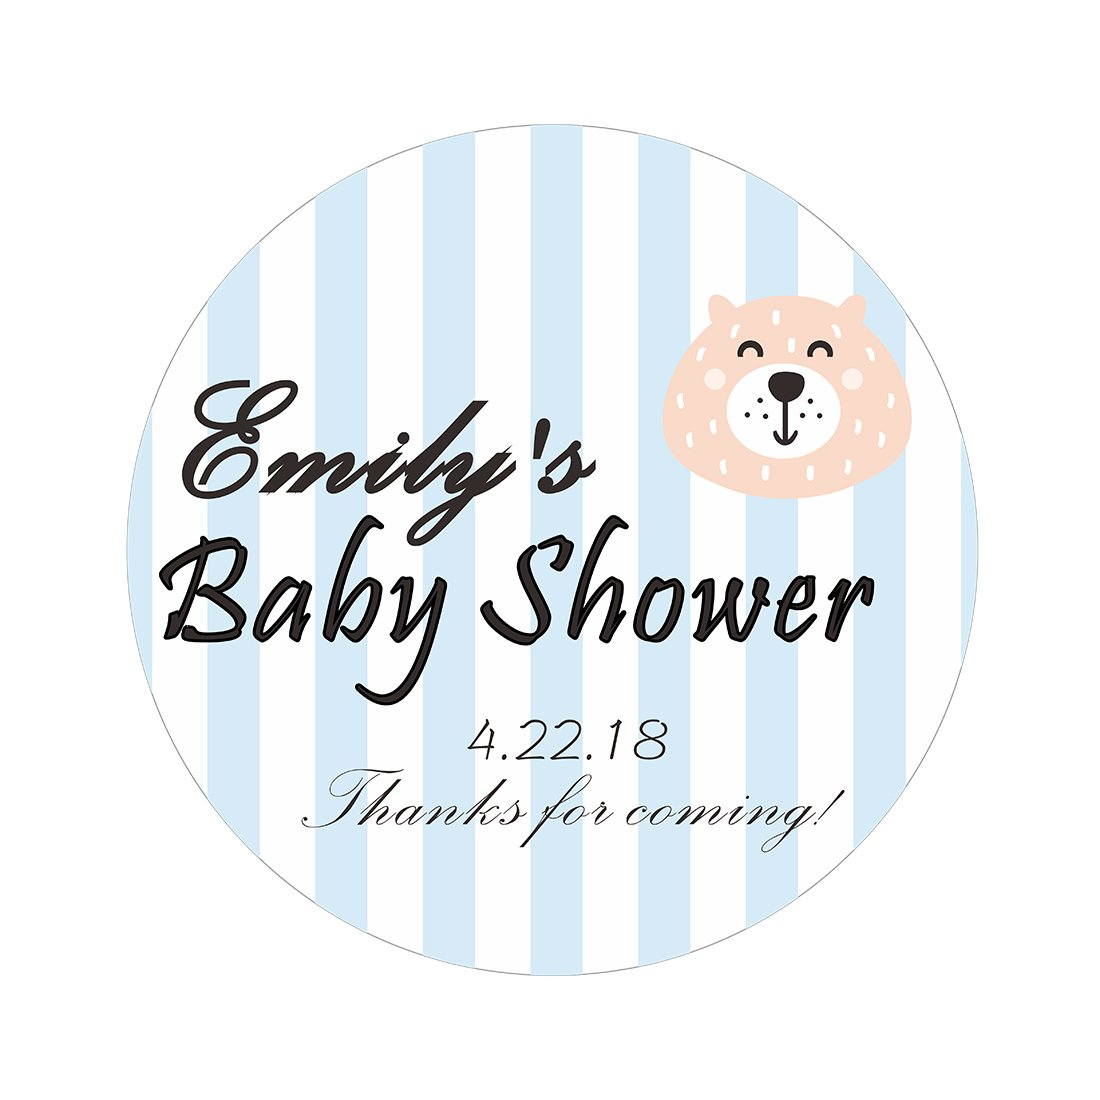 Amazon com mjartoria custom personalized babys shower round labels stickers 2 inch diameter pack of 500 office products